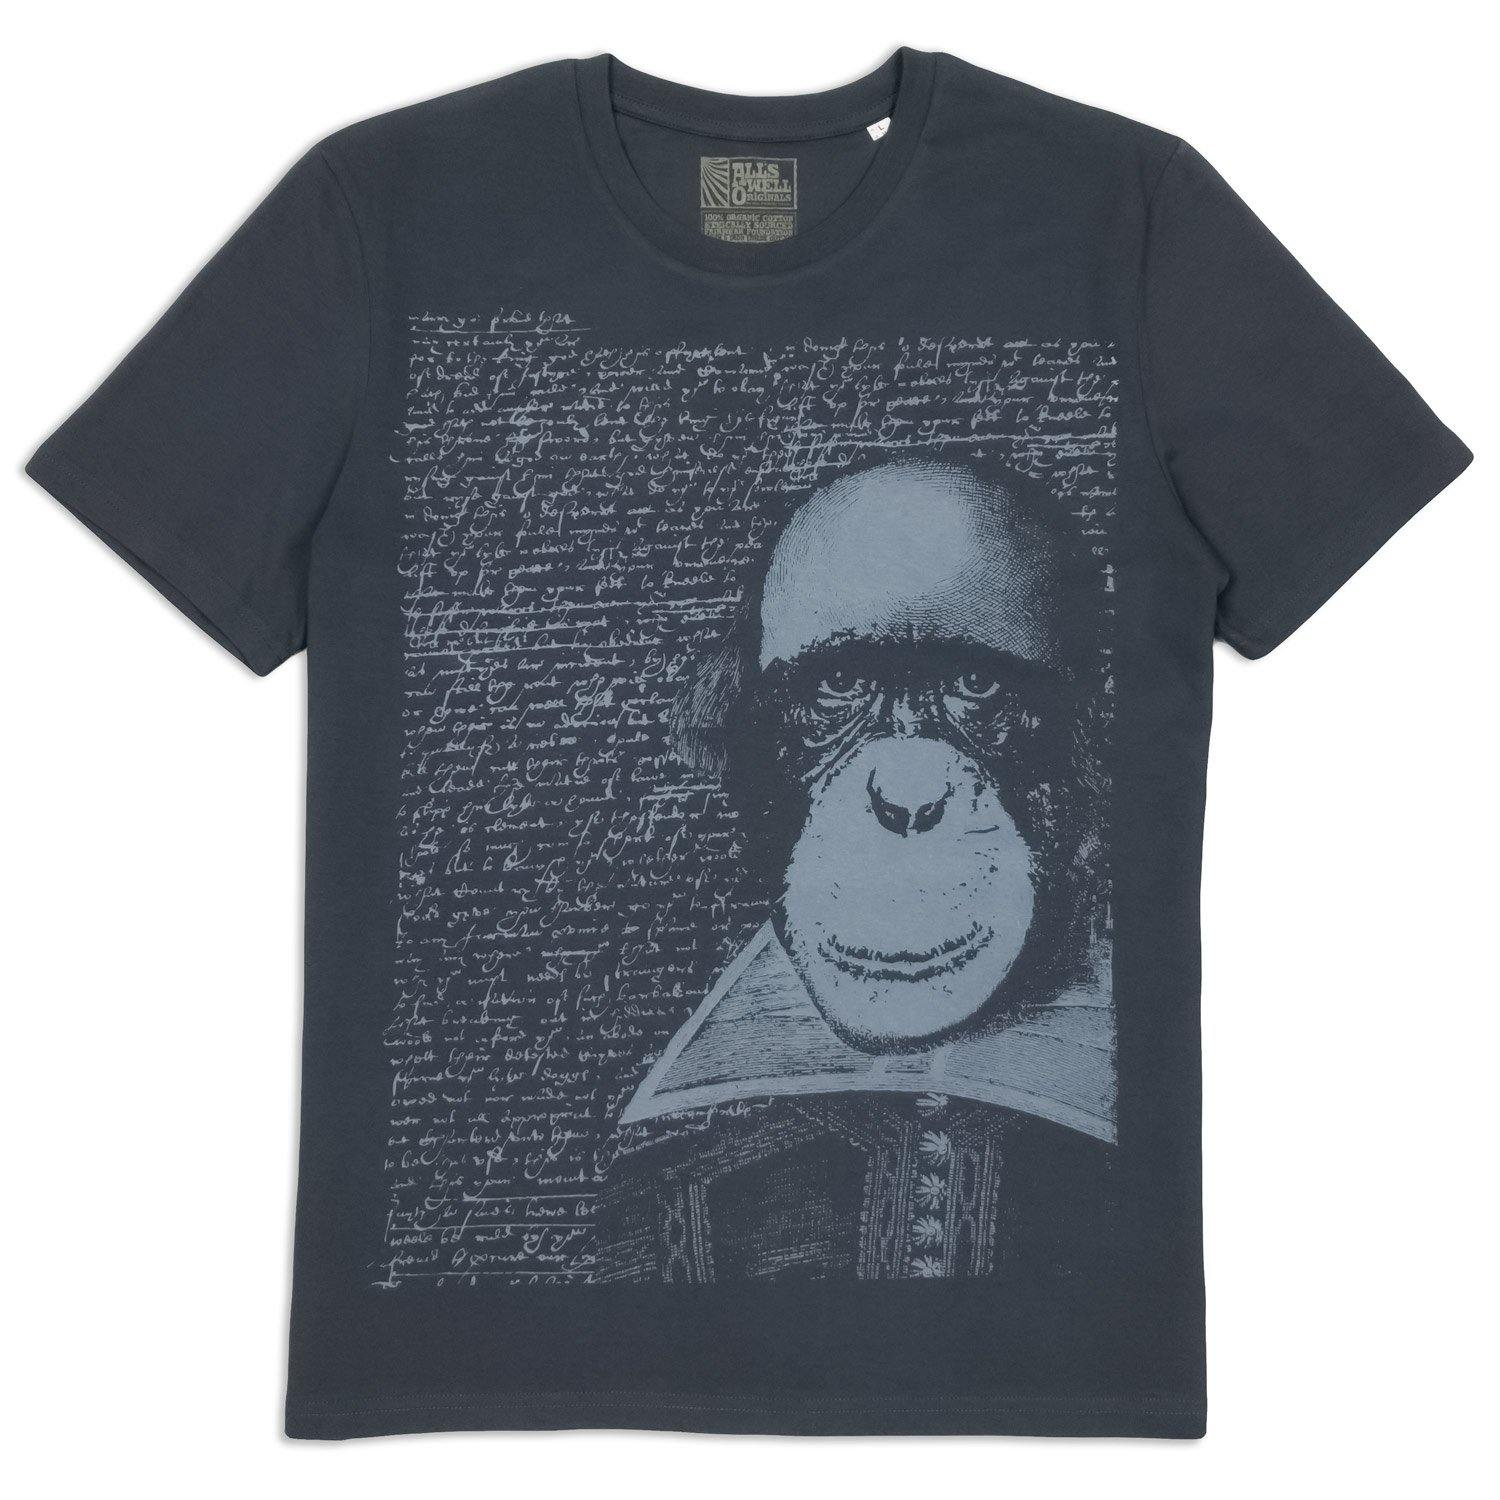 Apespeare Shakespeare t-shirt hand printed 100% organic cotton t-shirt